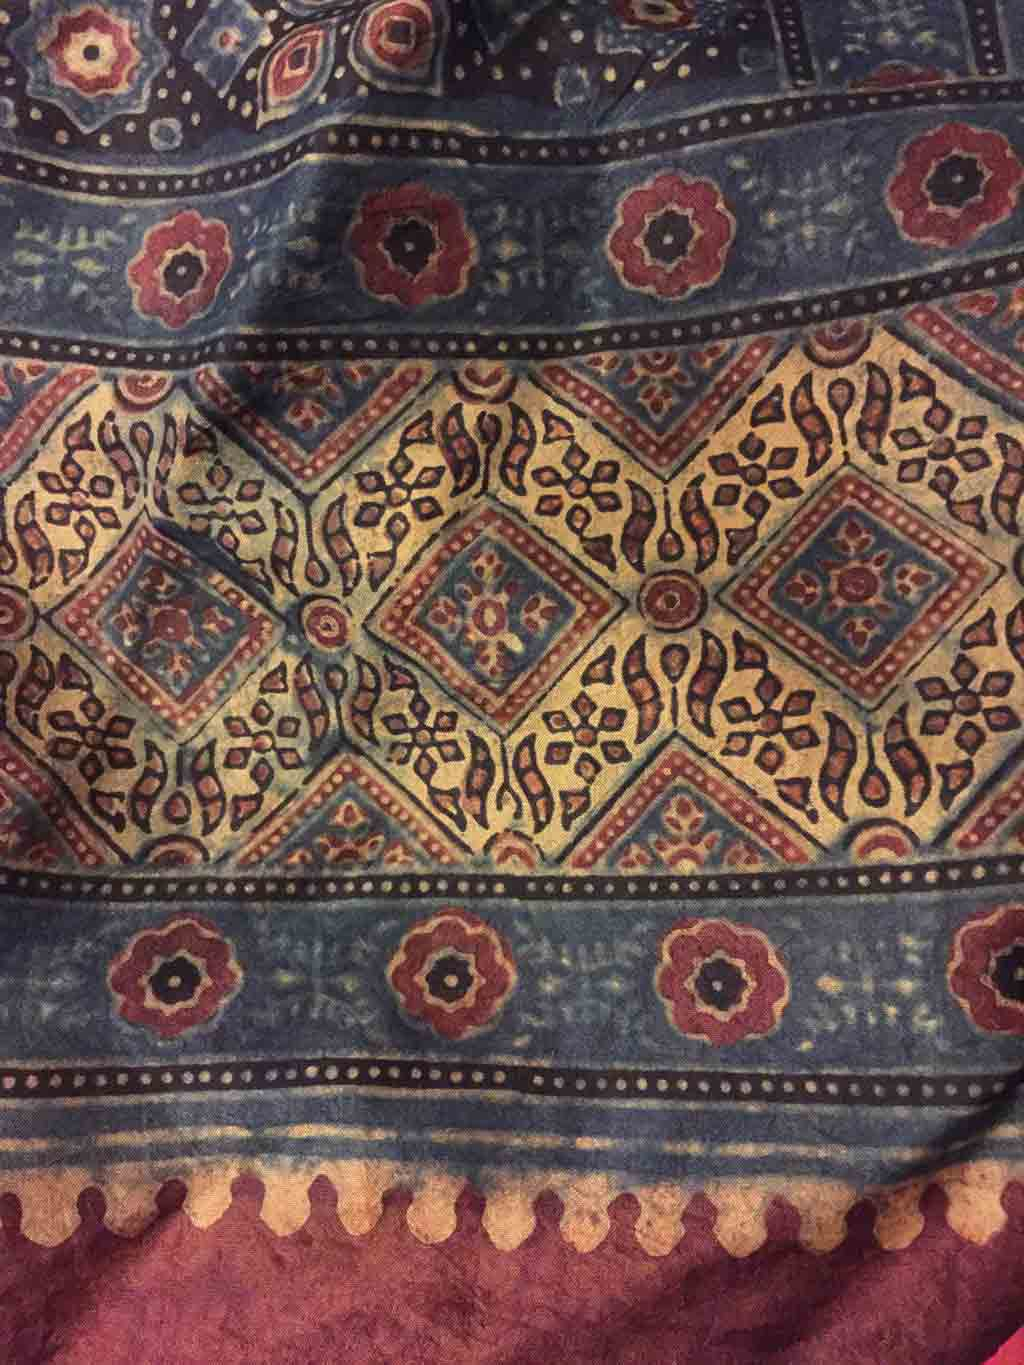 wide view of patterned rug